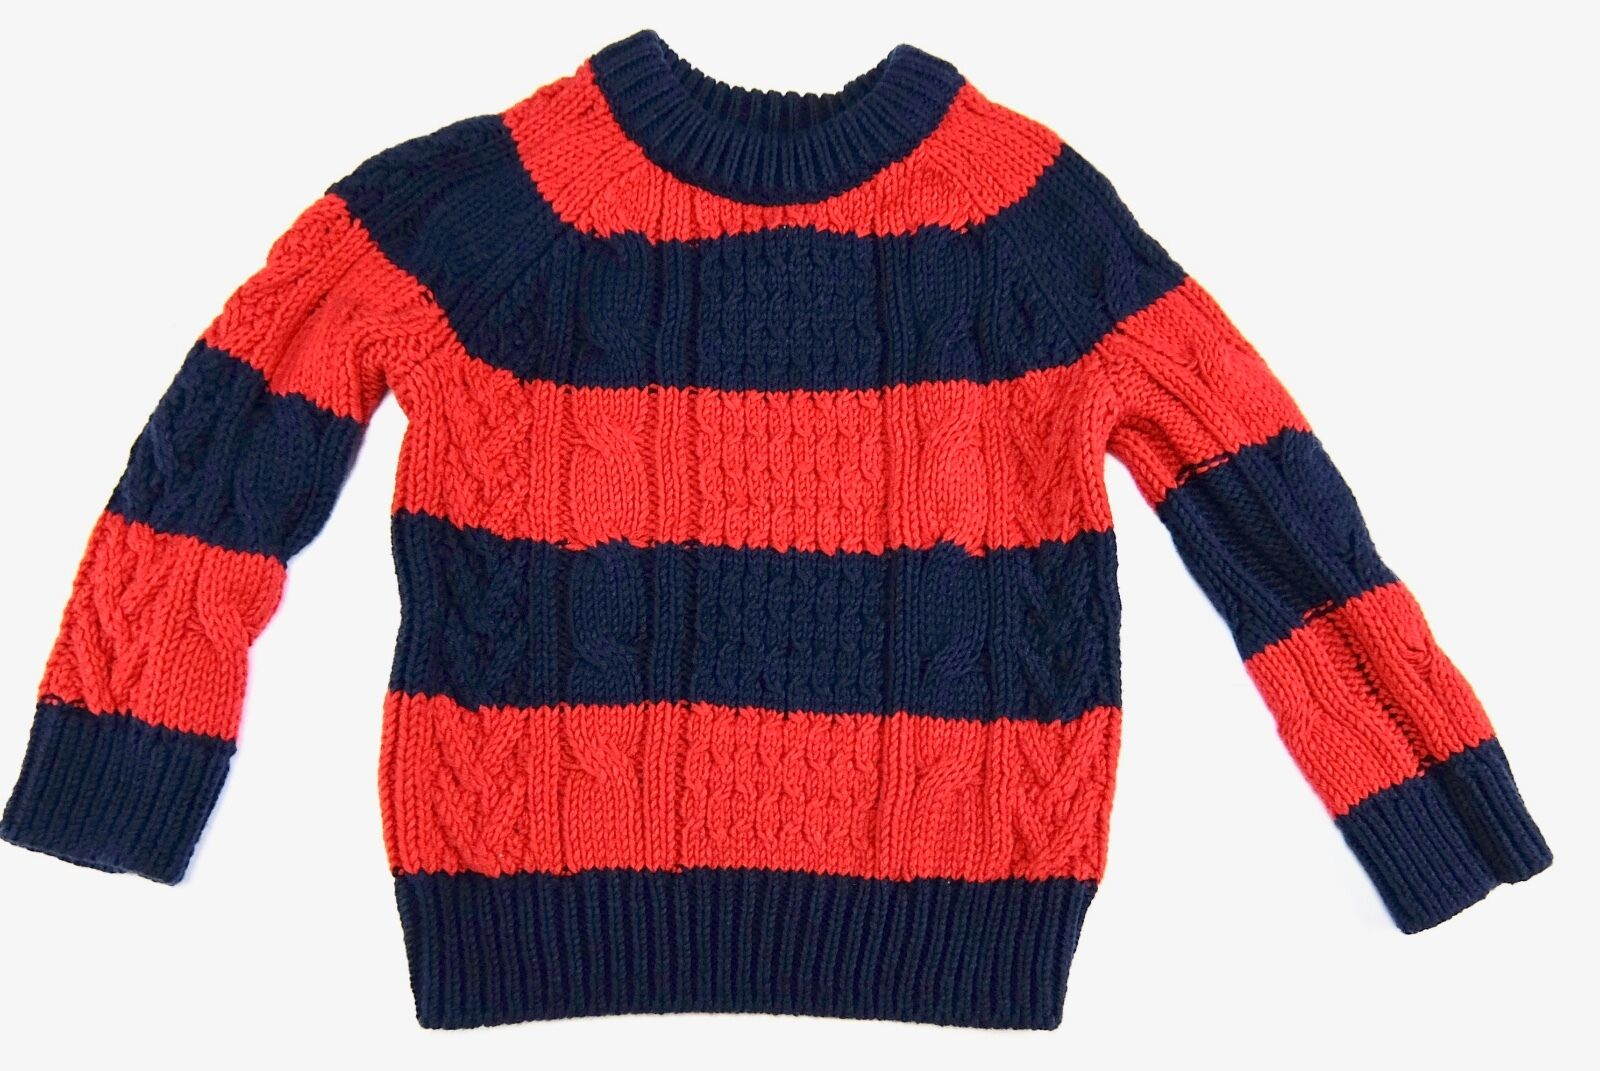 Baby Gap Boys Cableknit Sweater Red Blue Stripe Pullover Size 18 ...